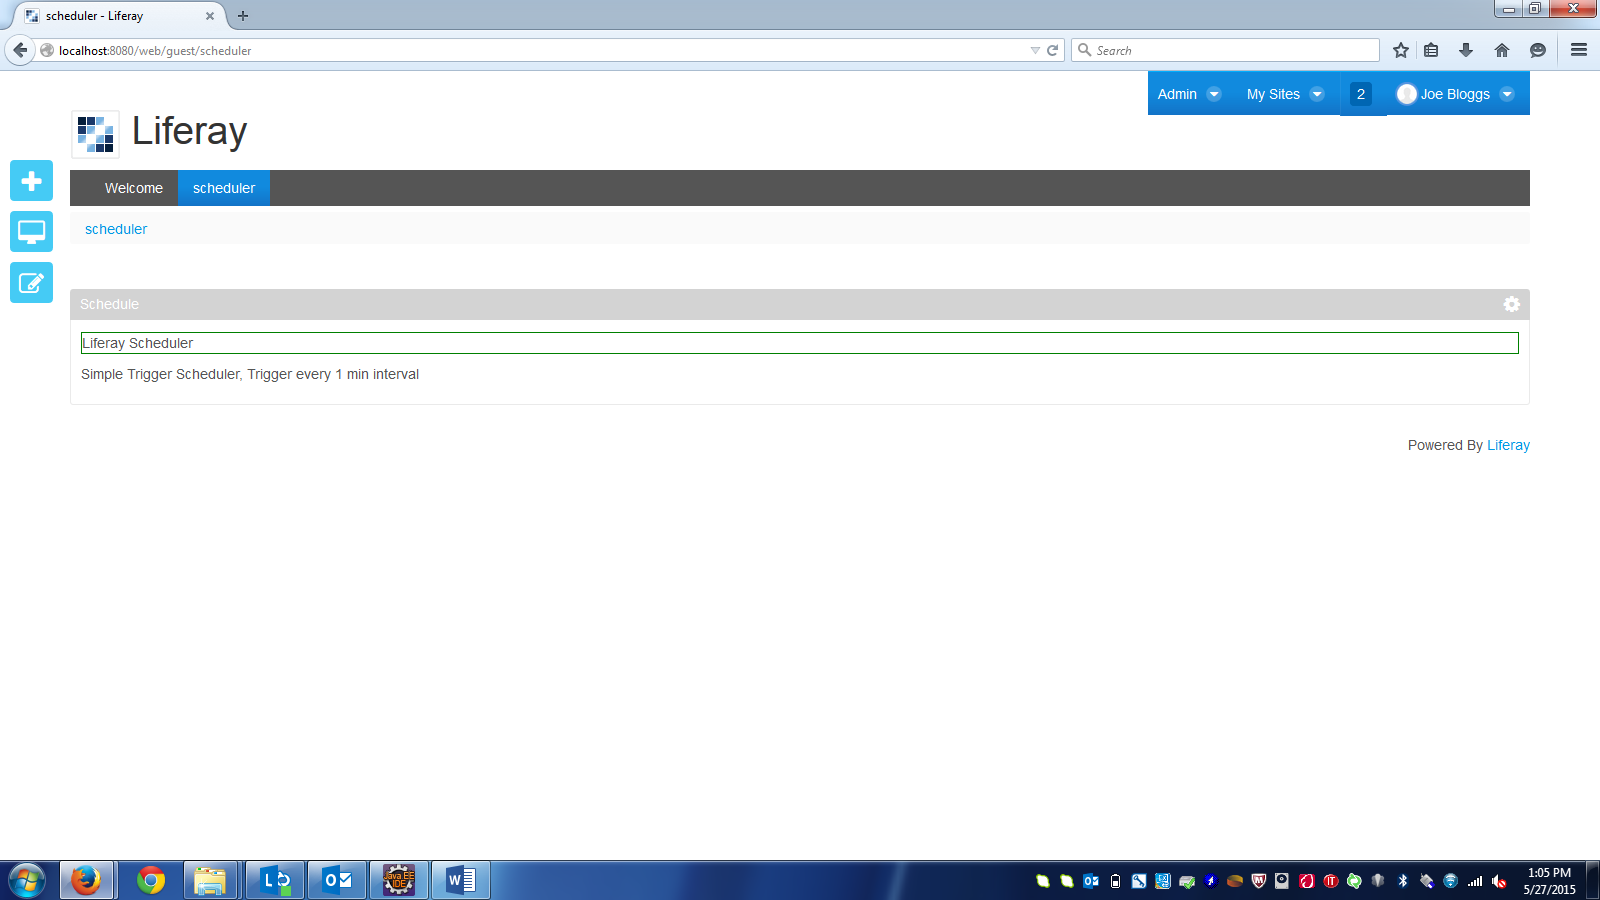 Scheduler In Liferay ~ Getting into Liferay